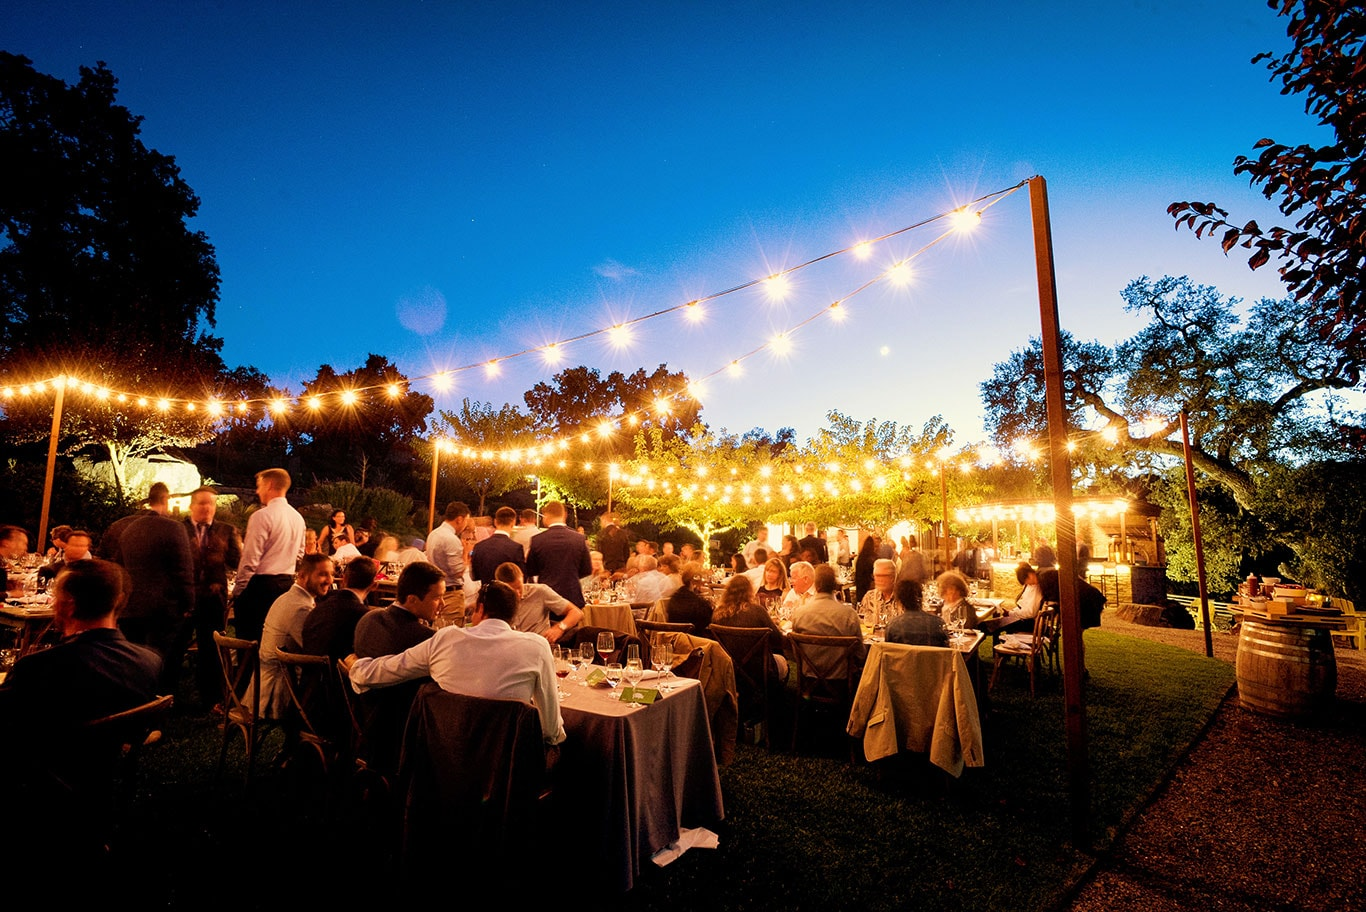 Twilight Sunset Arista Winery Outdoor Wedding Reception